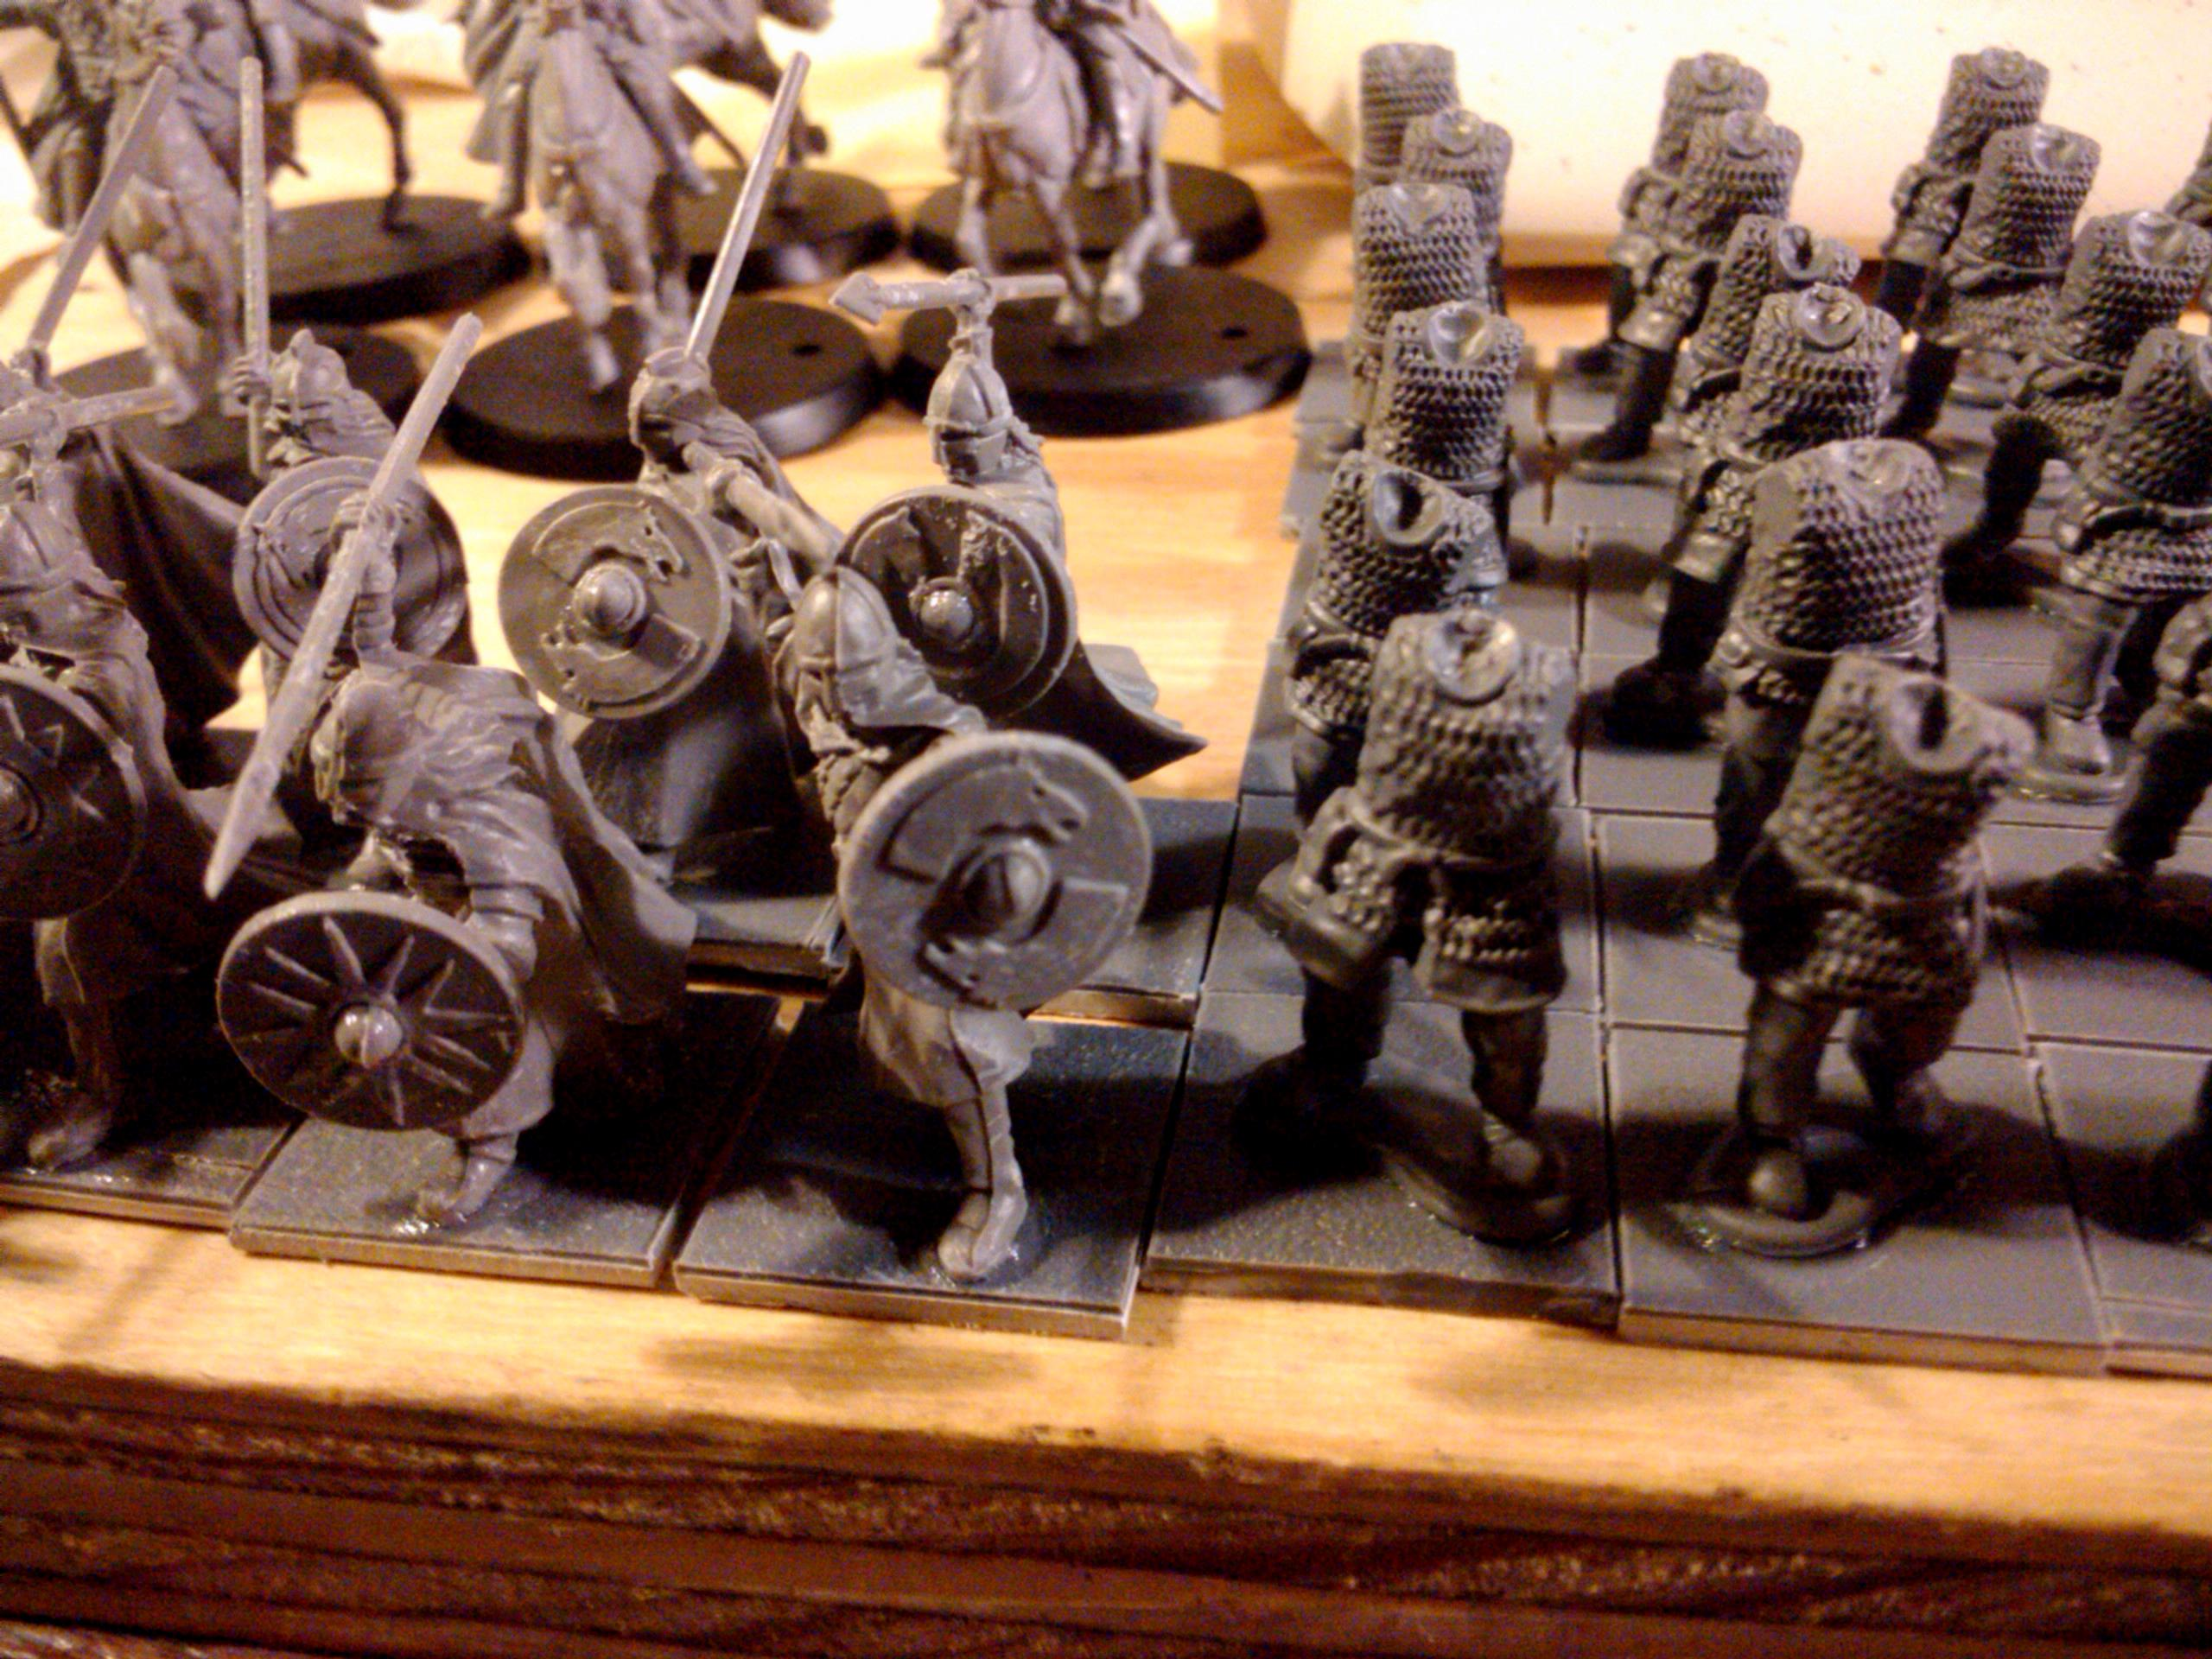 28mm, Army, Build, Cavalry, Ceorl, Fyrd, Germanic, Historical, Hobby, Huscarl, Infantry, Lord Of The Rings, Painting, Saxon, Thegn, Troops, Vikings, Warhammer Ancients